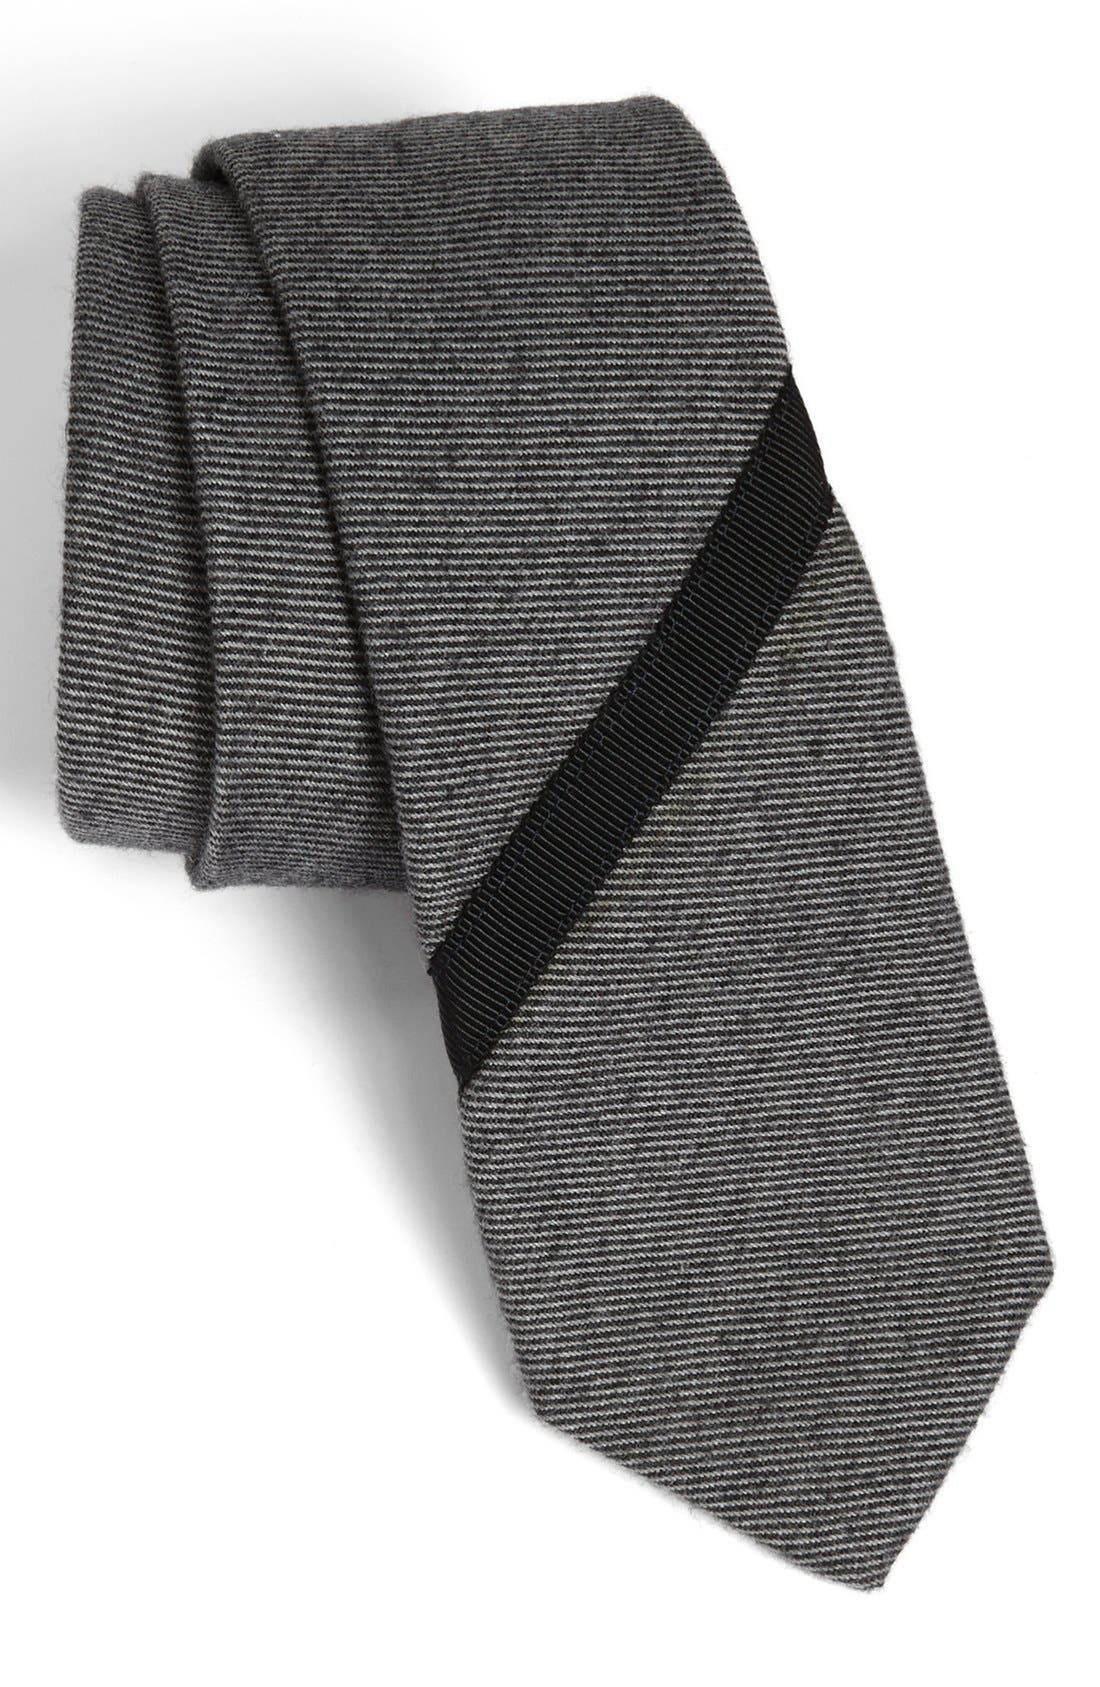 Alternate Image 1 Selected - rag & bone Woven Tie